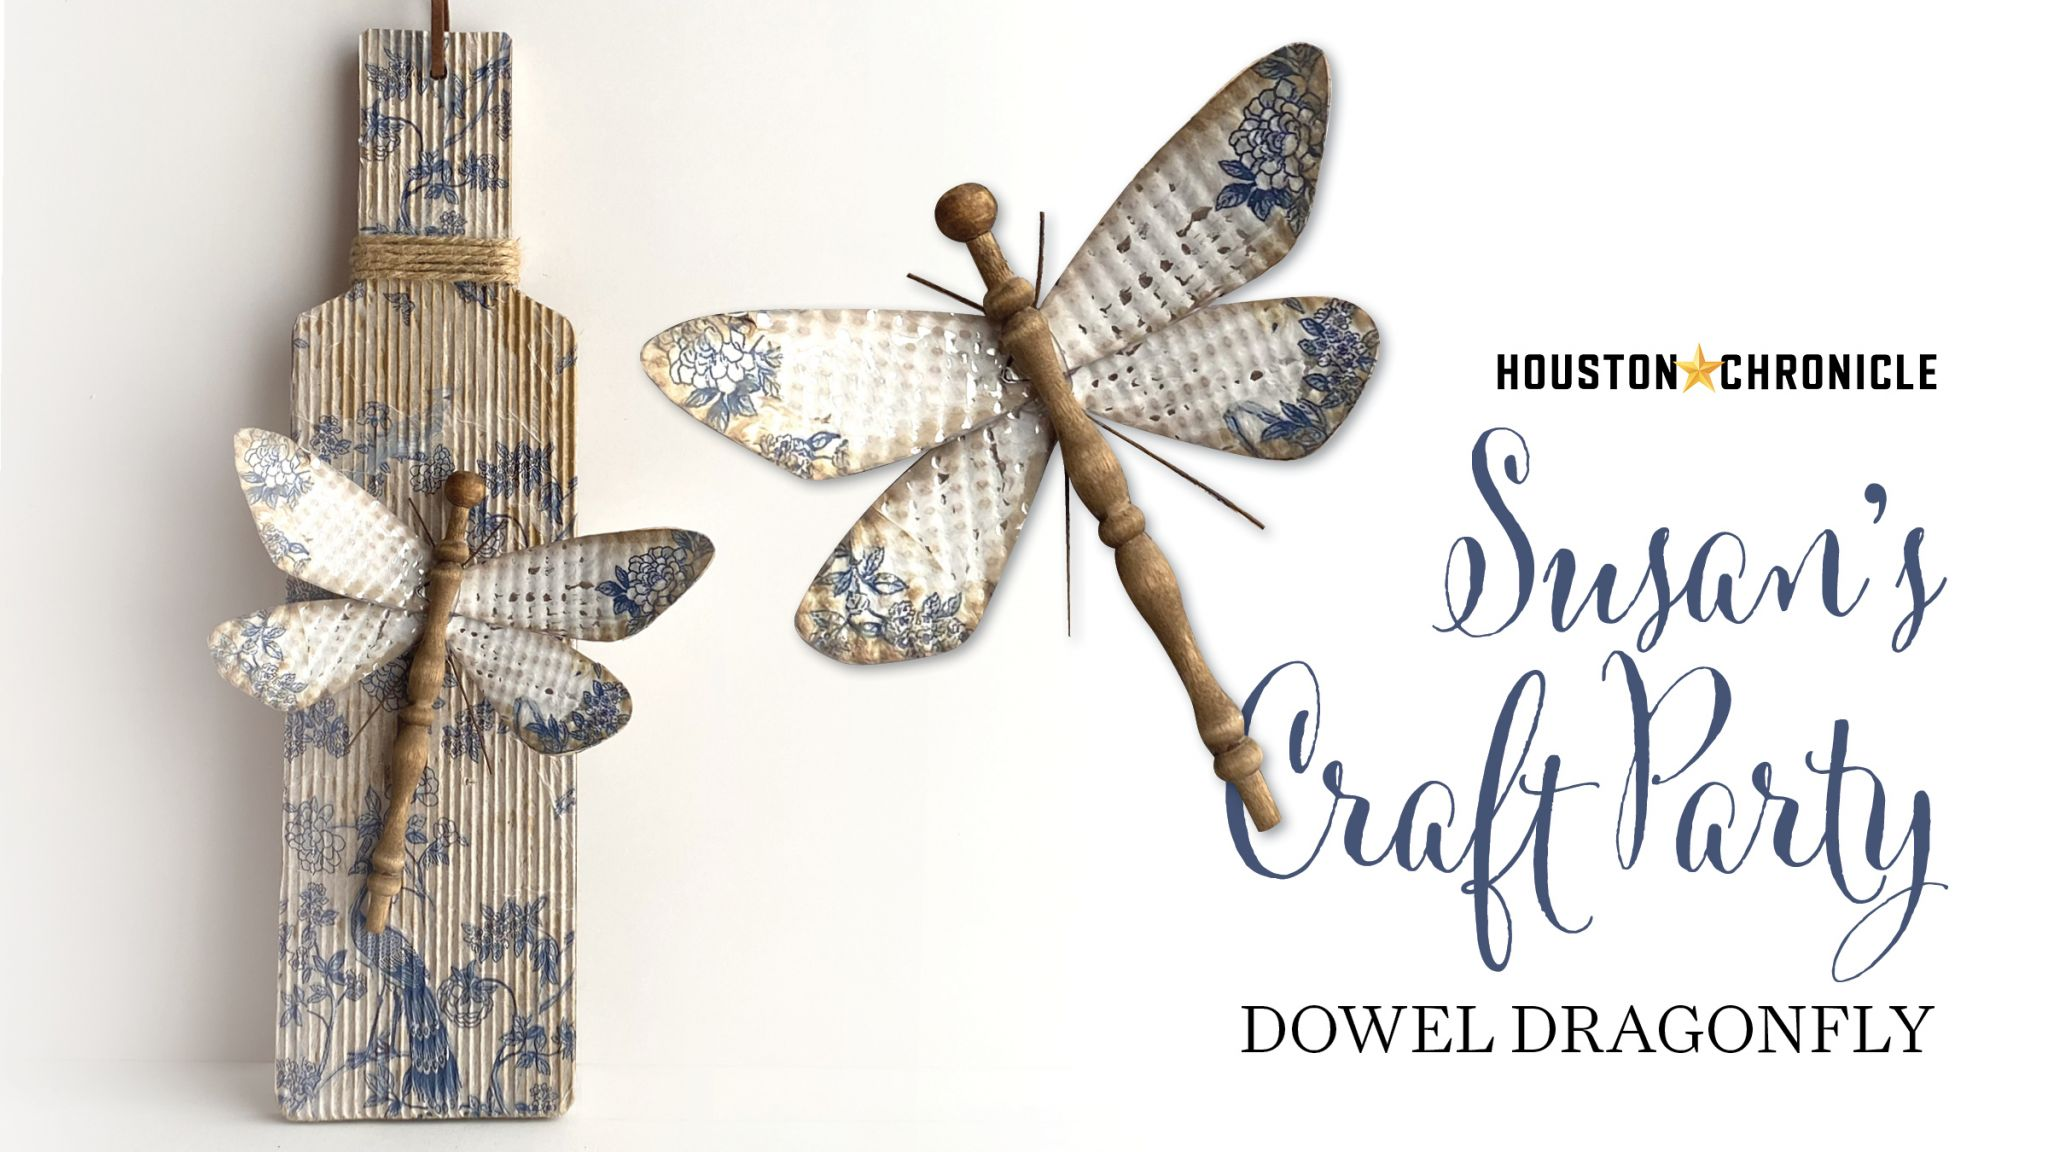 Here's how to make a dowel dragonfly with Susan's Craft Party